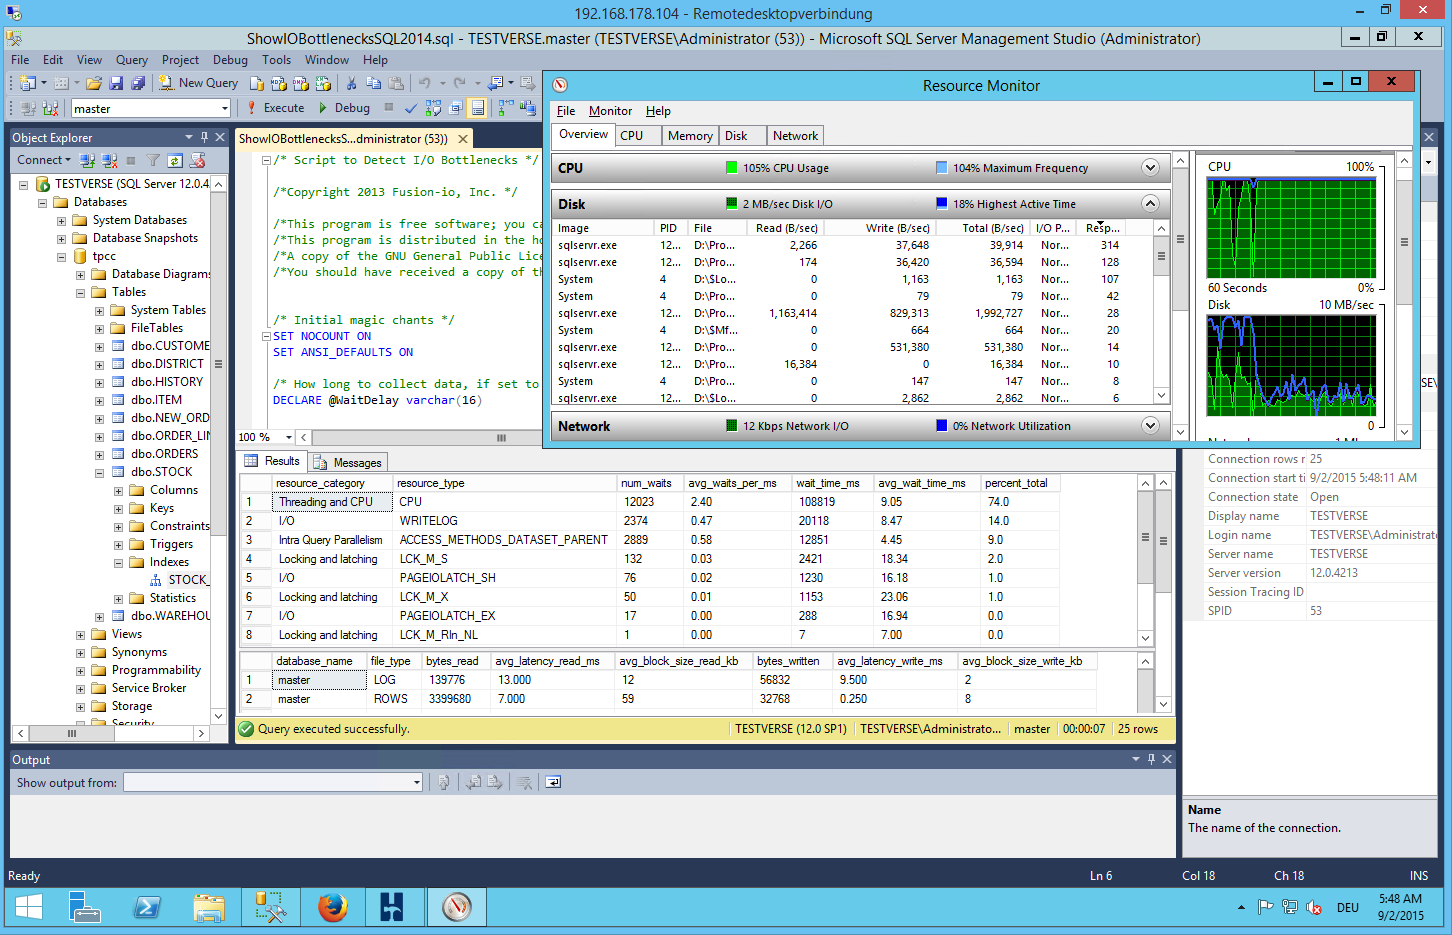 SQLServer2014_MaxDegreePar_active_CPU